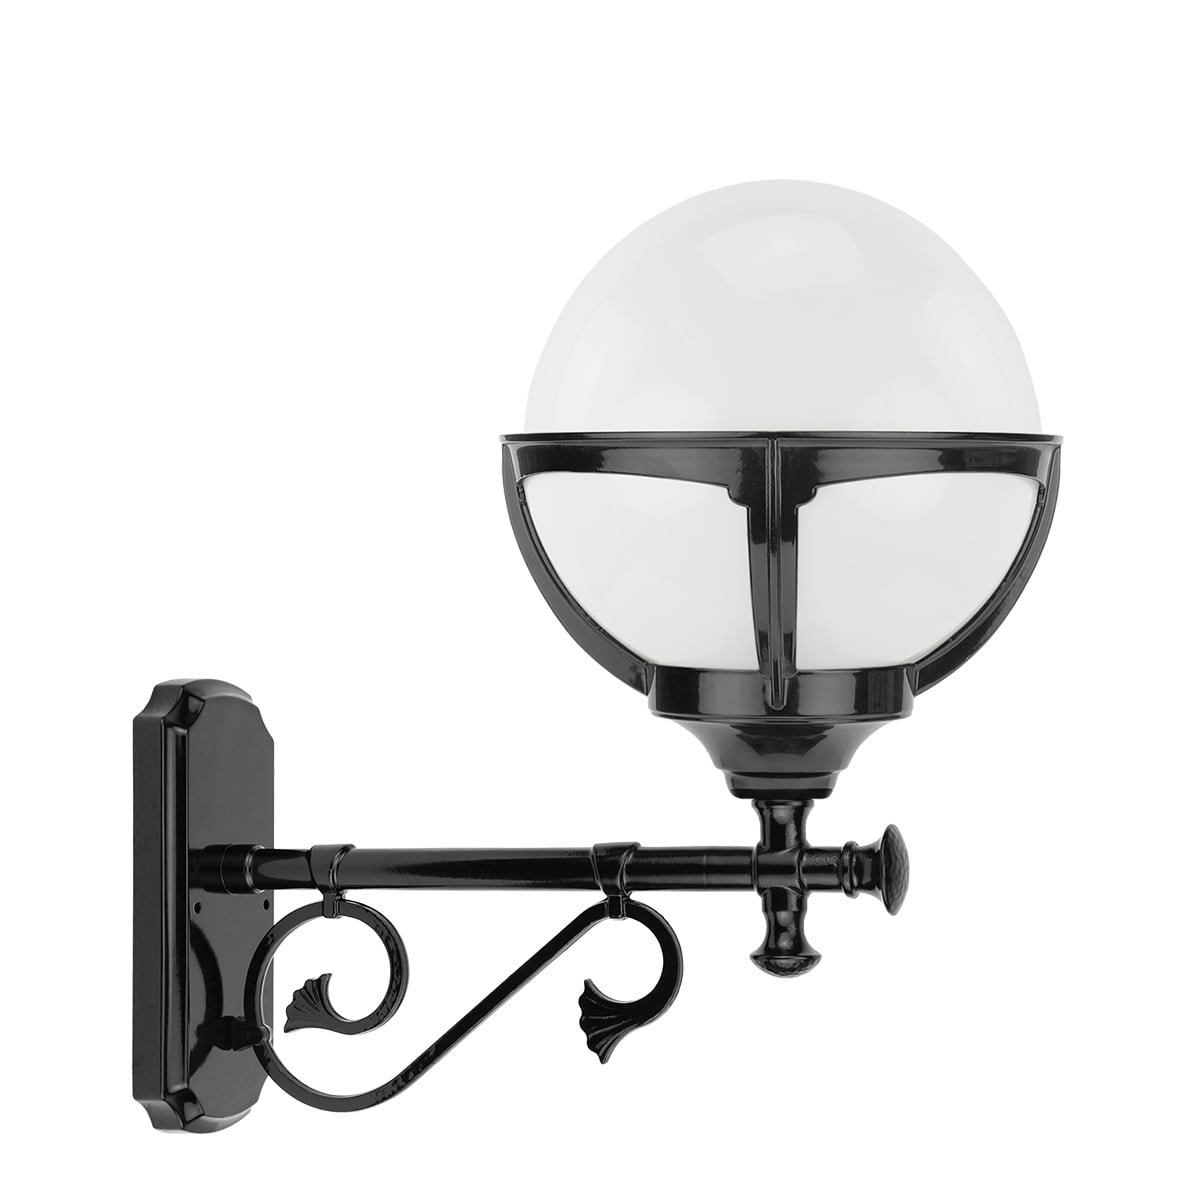 Outdoor Lamps Classic Rural Lamp home door white globe Barnflair - 48 cm